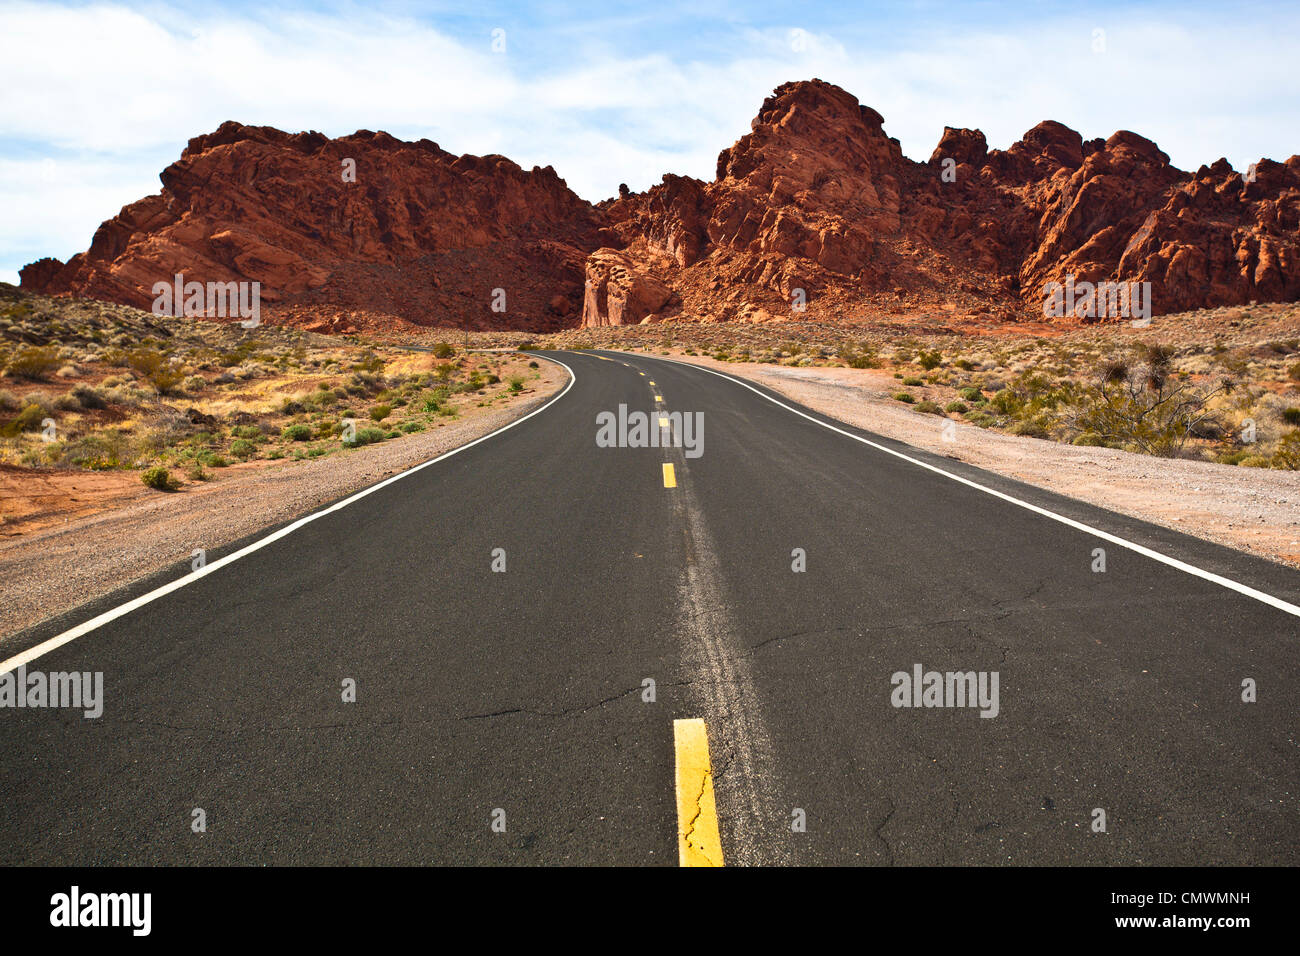 Byway through the Sandstone Rock formations in Nevada's Valley of Fire - Stock Image